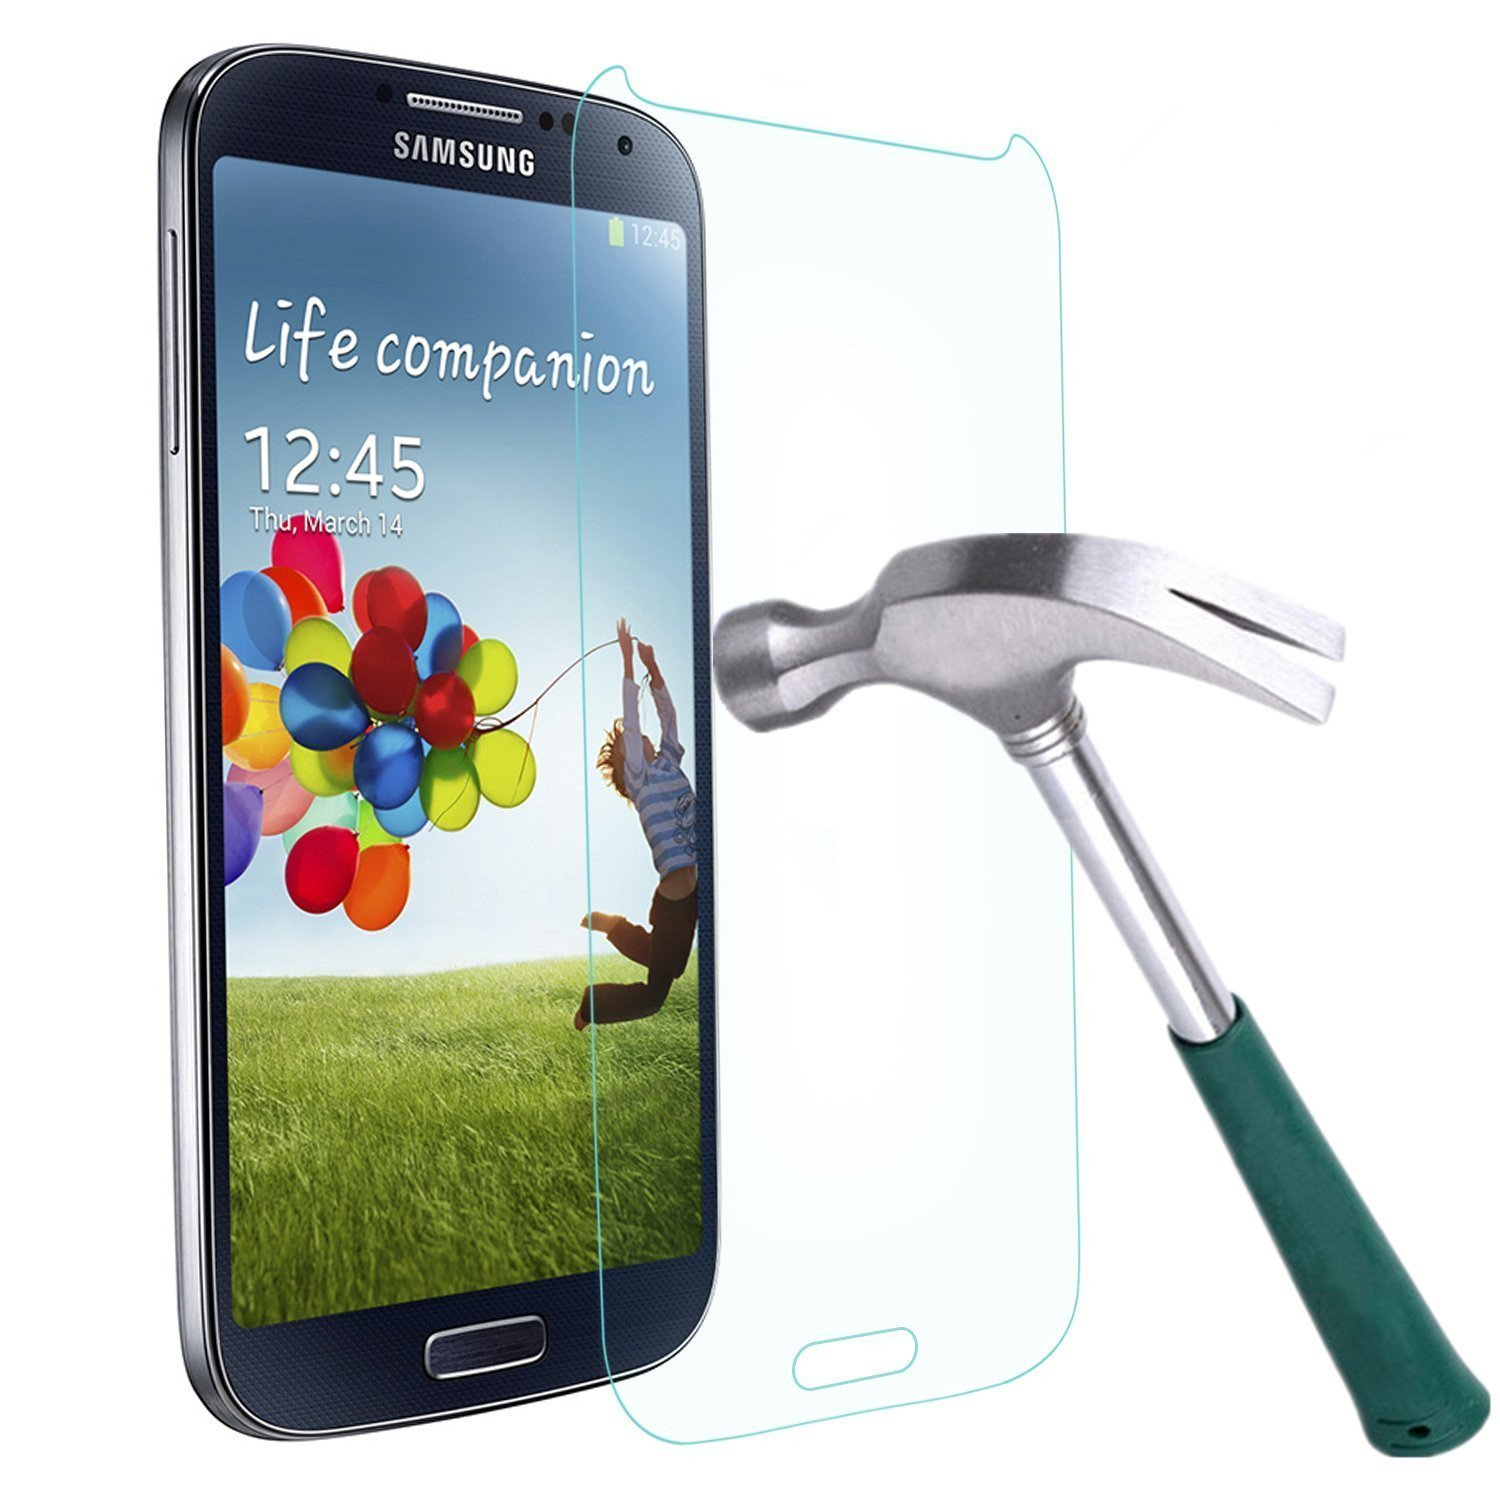 Galaxy S4 Screen Protector,TANTEK [Bubble-Free][HD-Clear][Anti-Scratch][Anti-Glare][Anti-Fingerprint] Premium Tempered Glass Screen Protector for Samsung Galaxy S4,[Lifetime Warranty]-[1Pack]